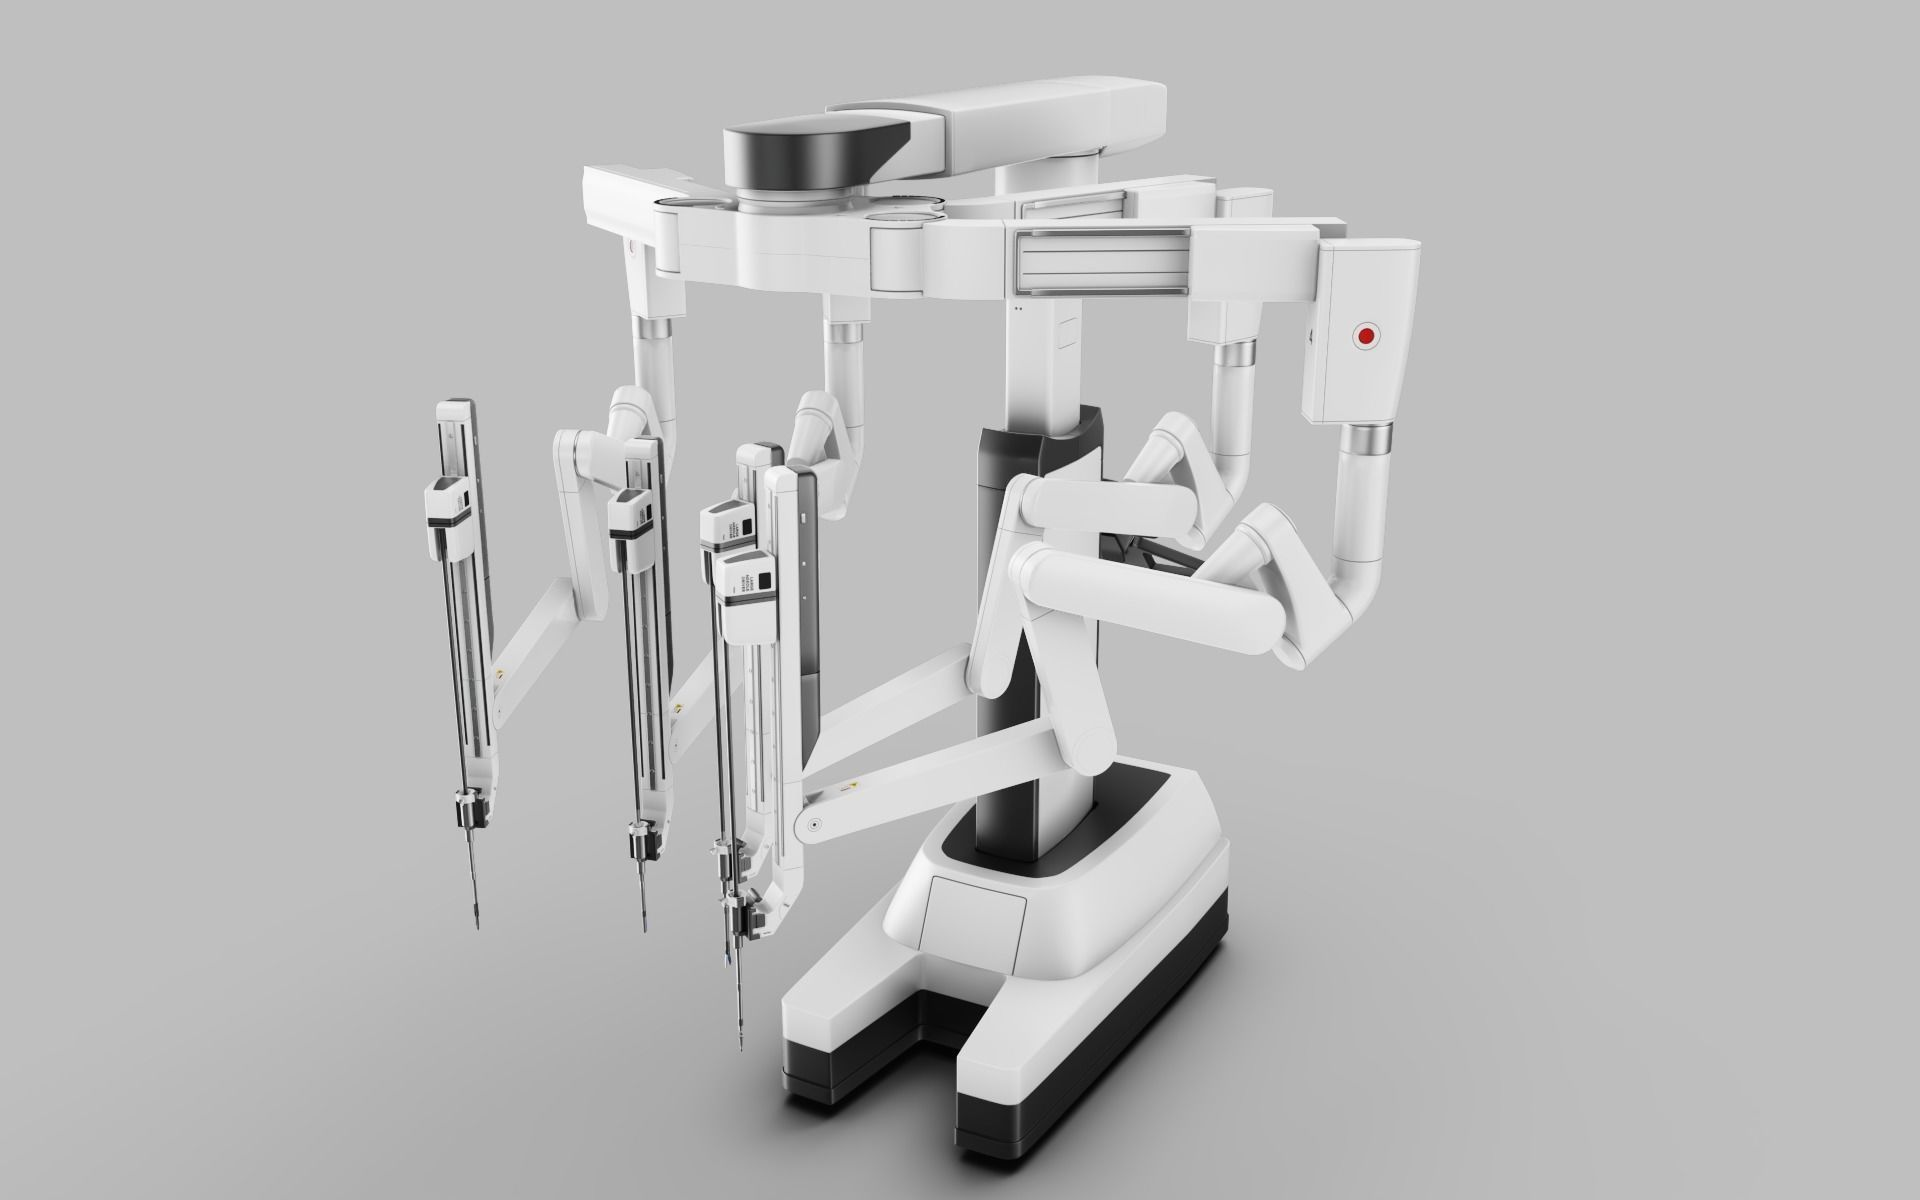 Surgical Robotic System da Vinci SI with an operating table